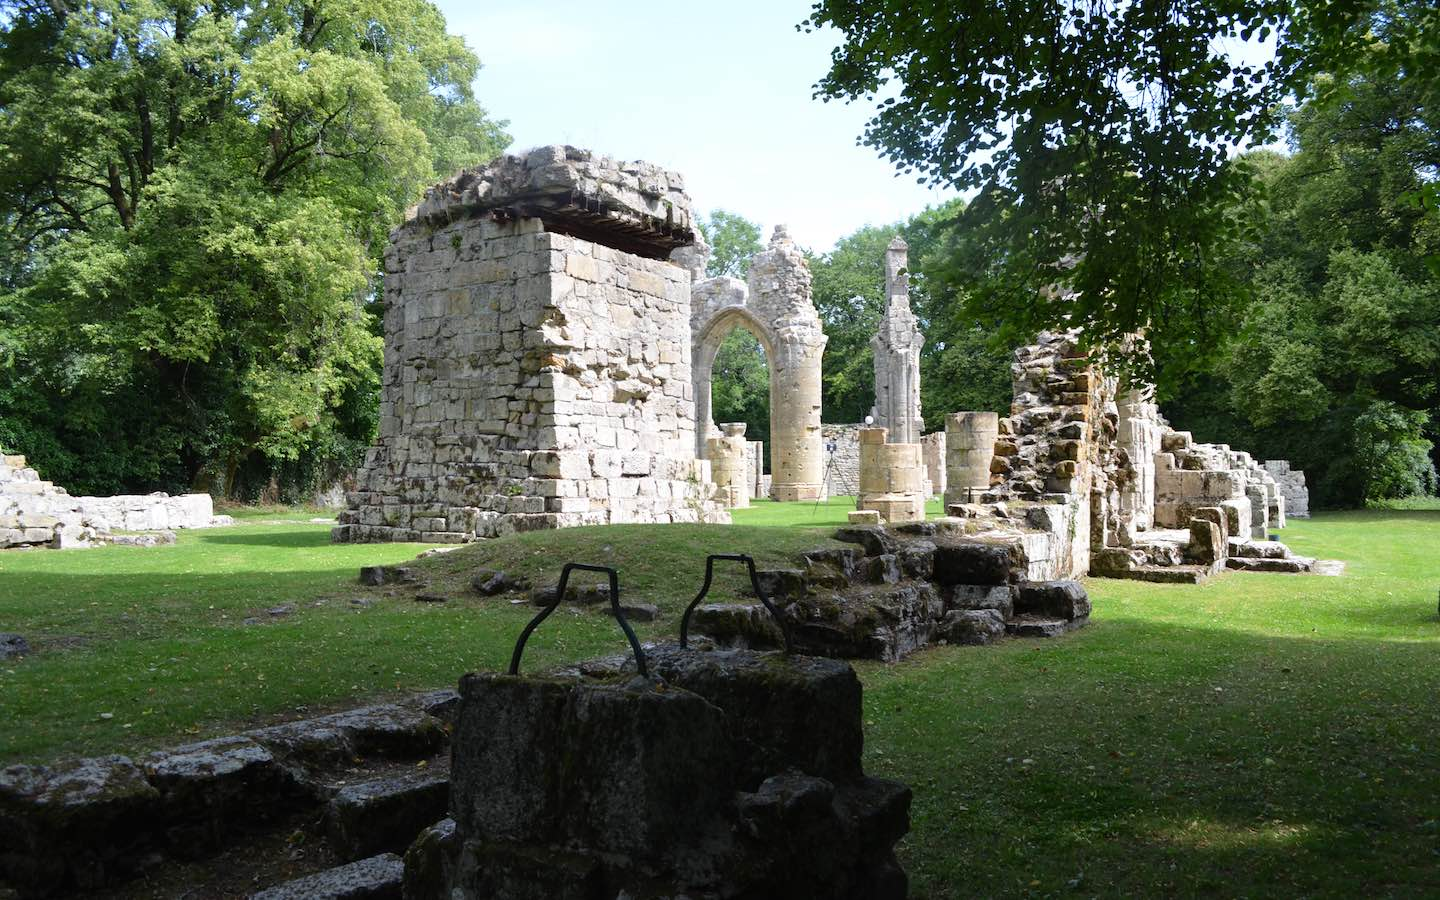 The ruins of Montfaucon